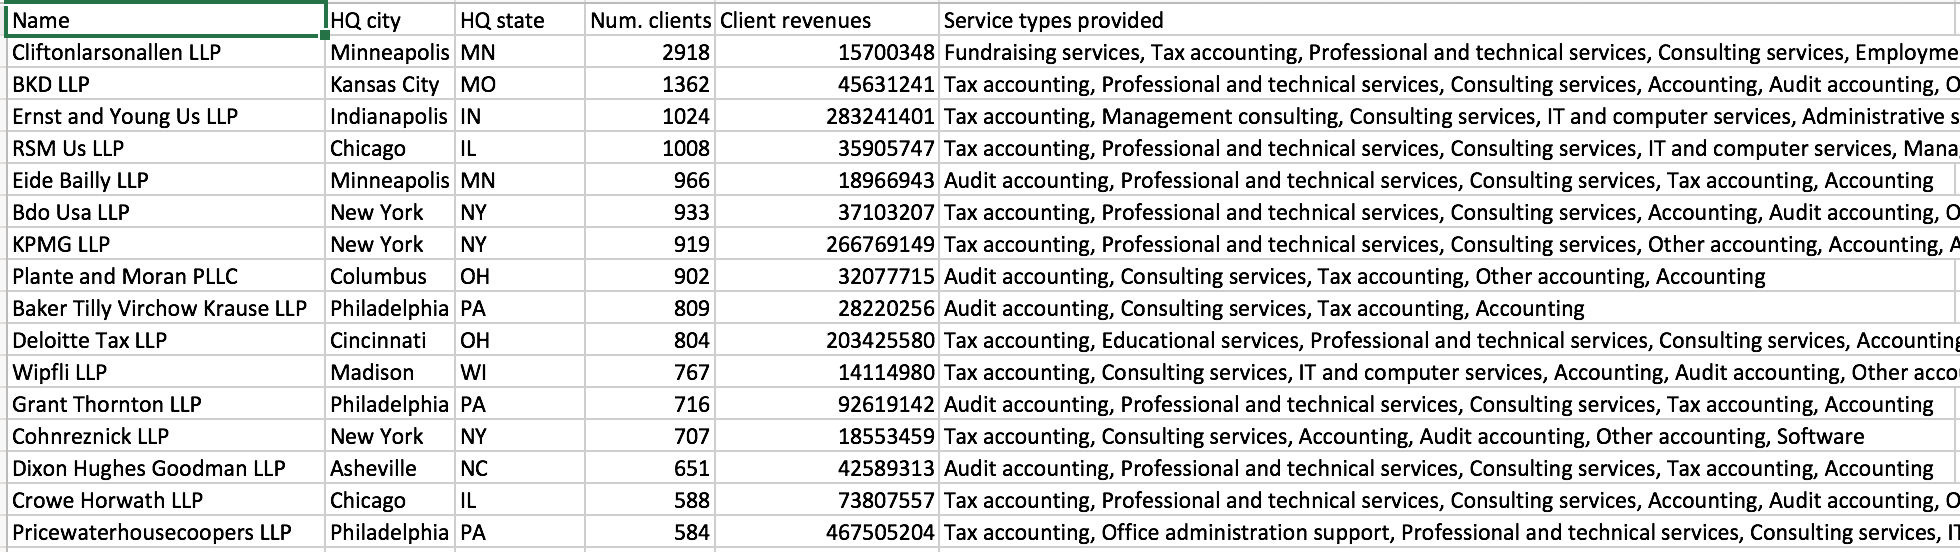 CSV file from vendor export